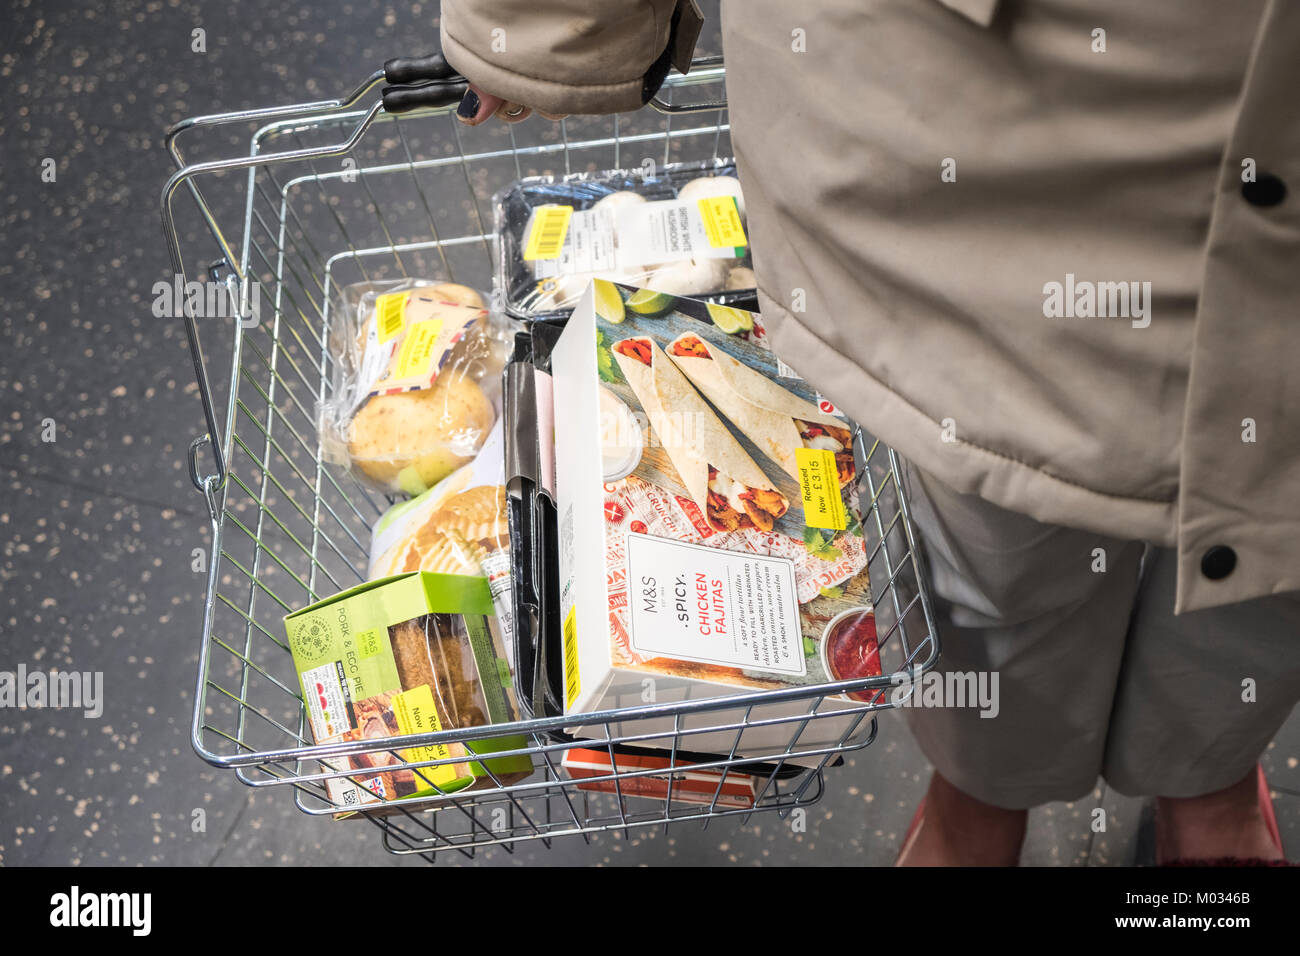 Price reduction. Shopping basket containing only reduced price food, England, UK - Stock Image